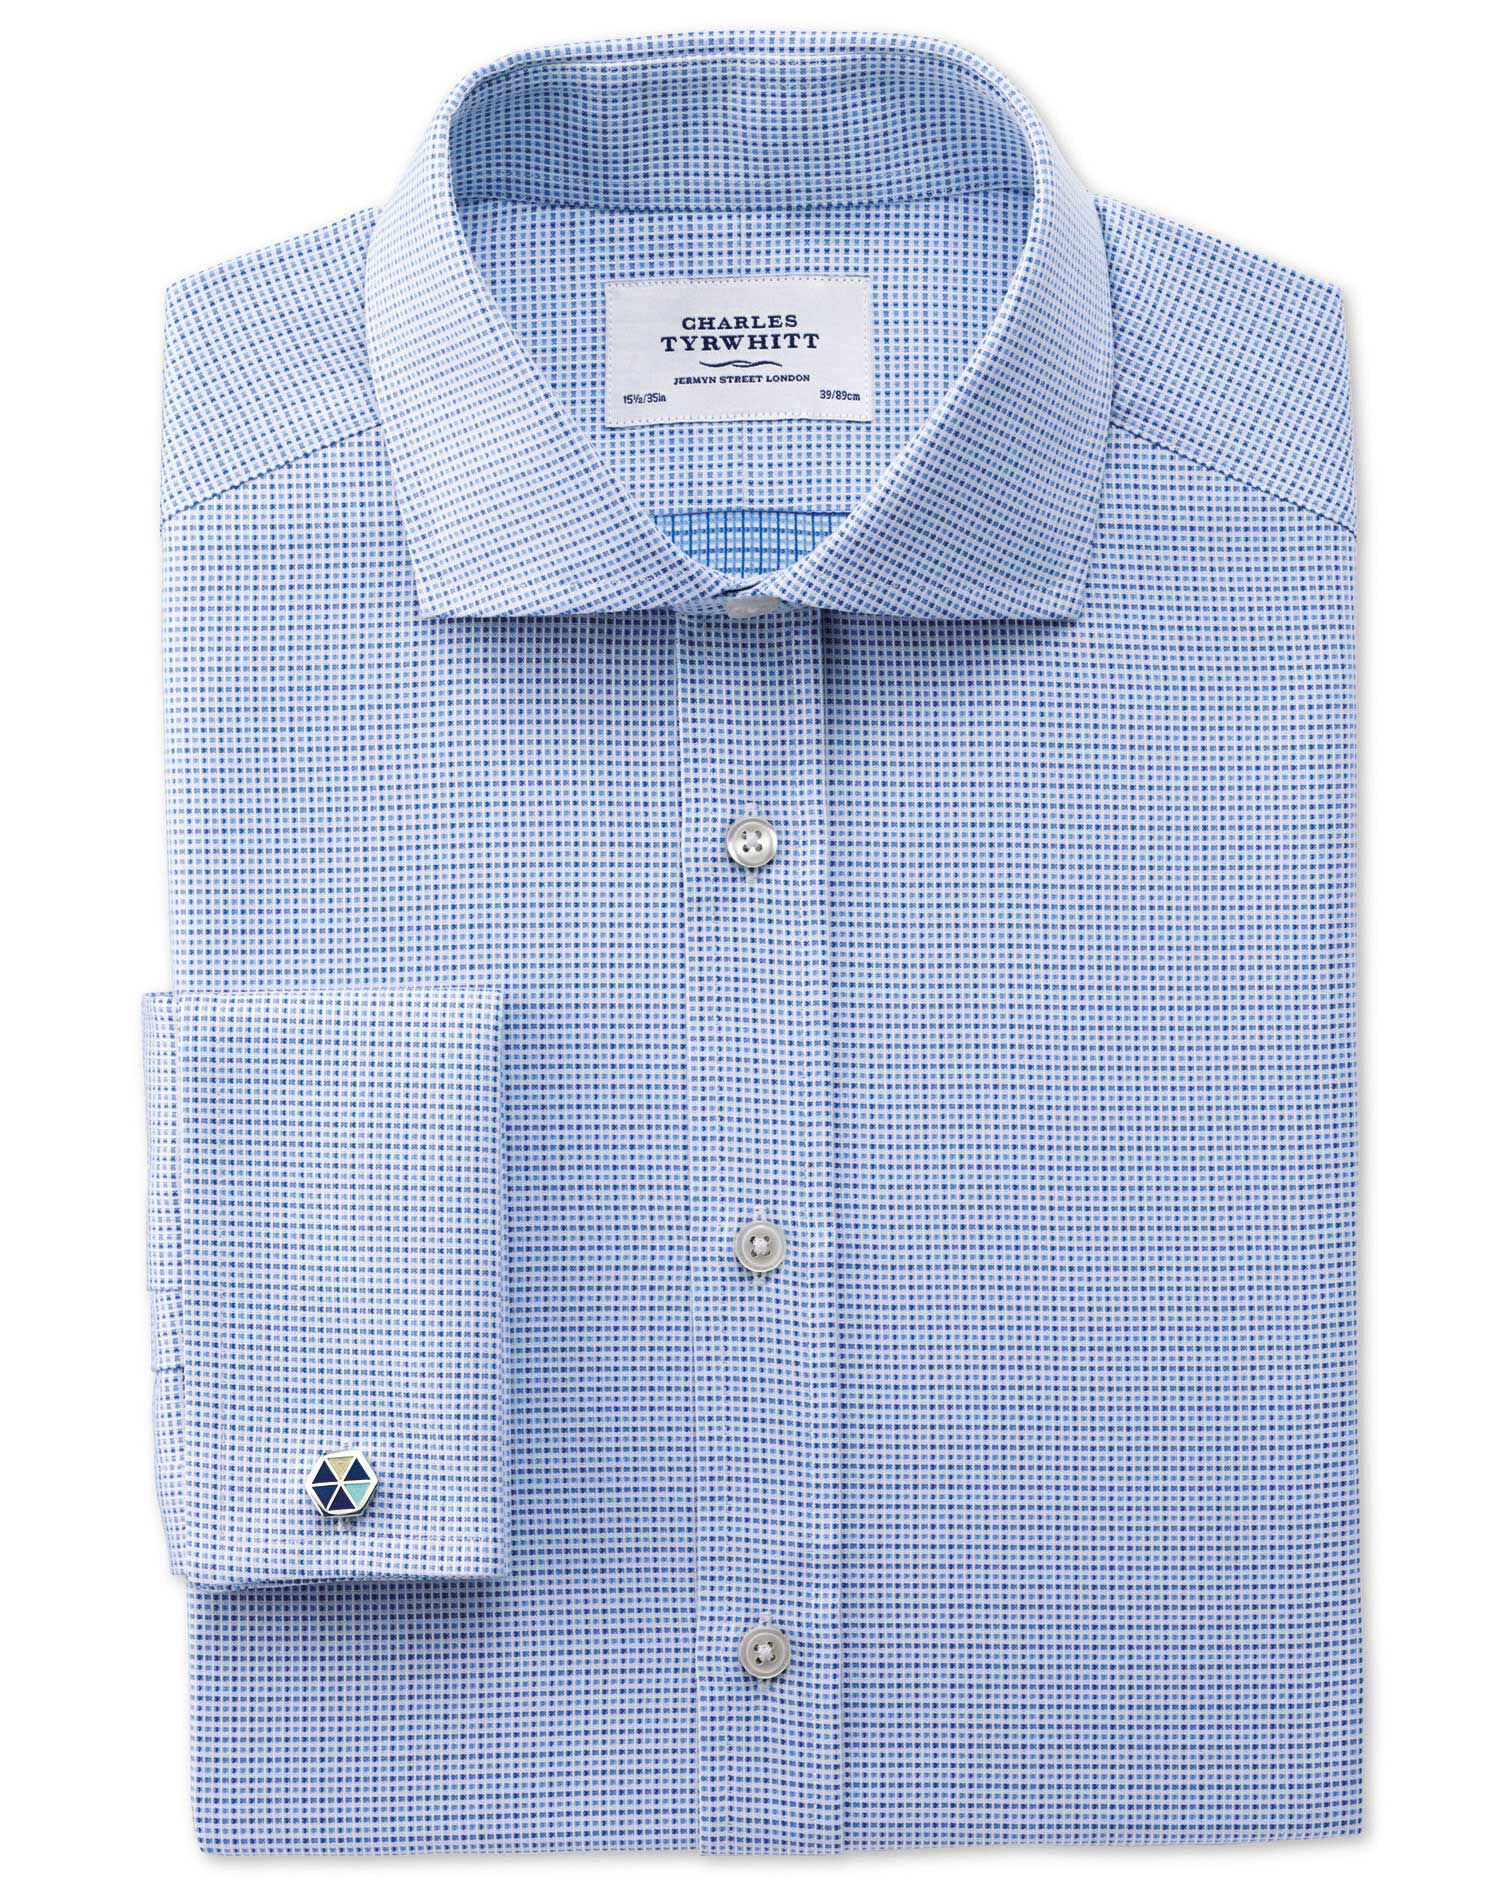 Extra Slim Fit Cutaway Collar Egyptian Cotton Textured Blue Formal Shirt Single Cuff Size 15.5/36 by